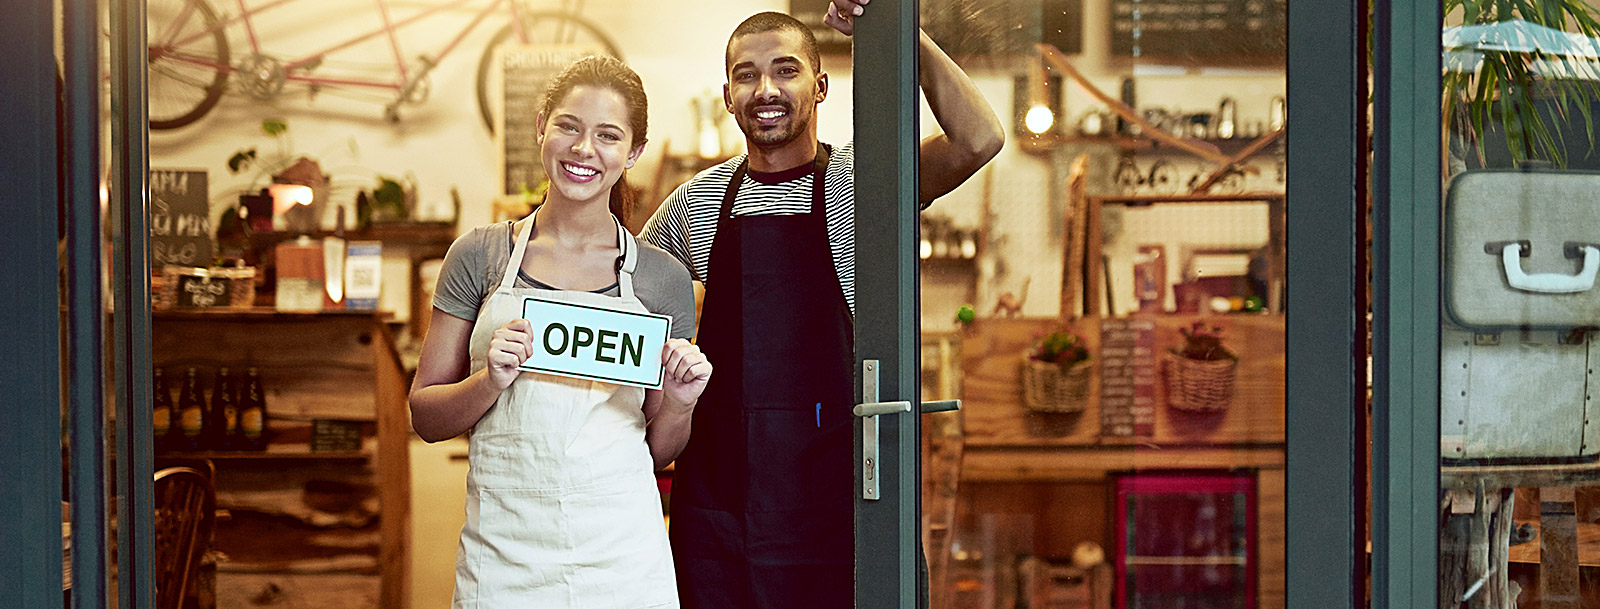 man and woman standing in doorway of new business